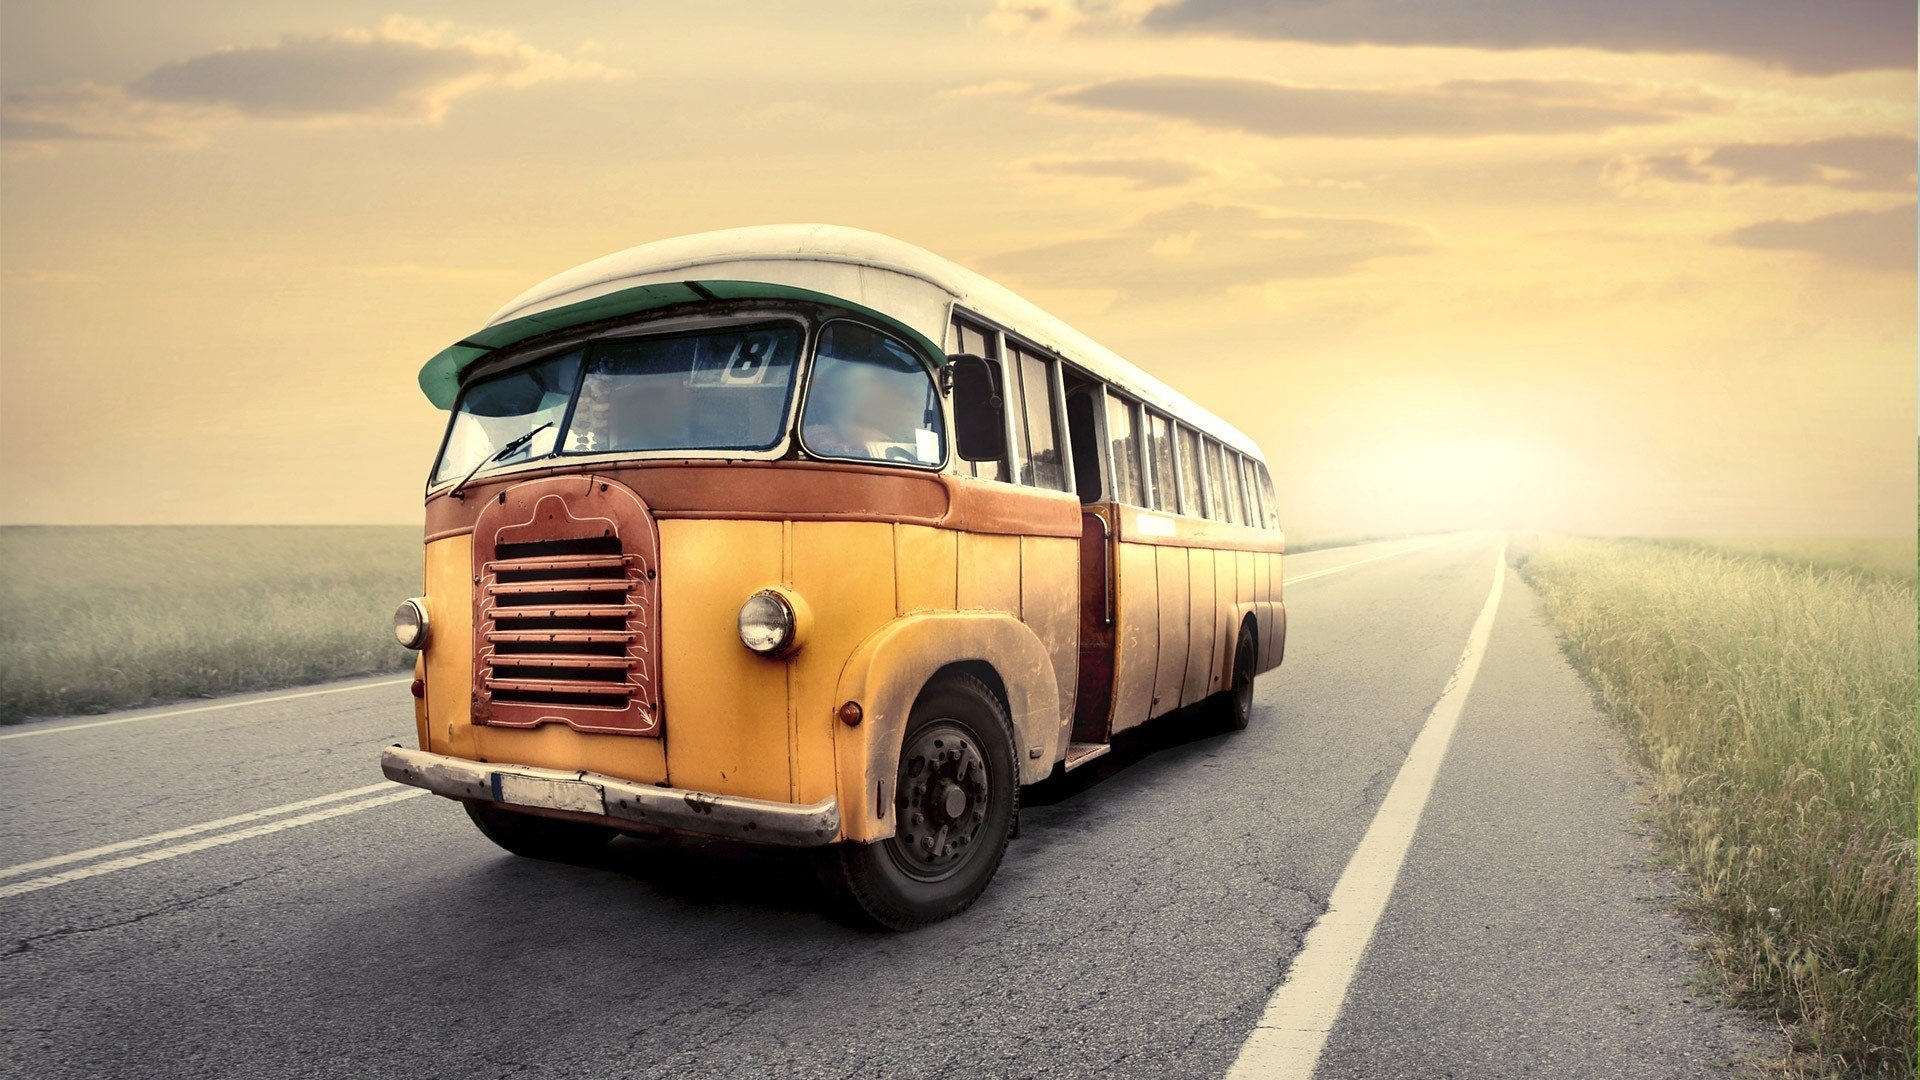 1920x1080 - Bus Wallpapers 1